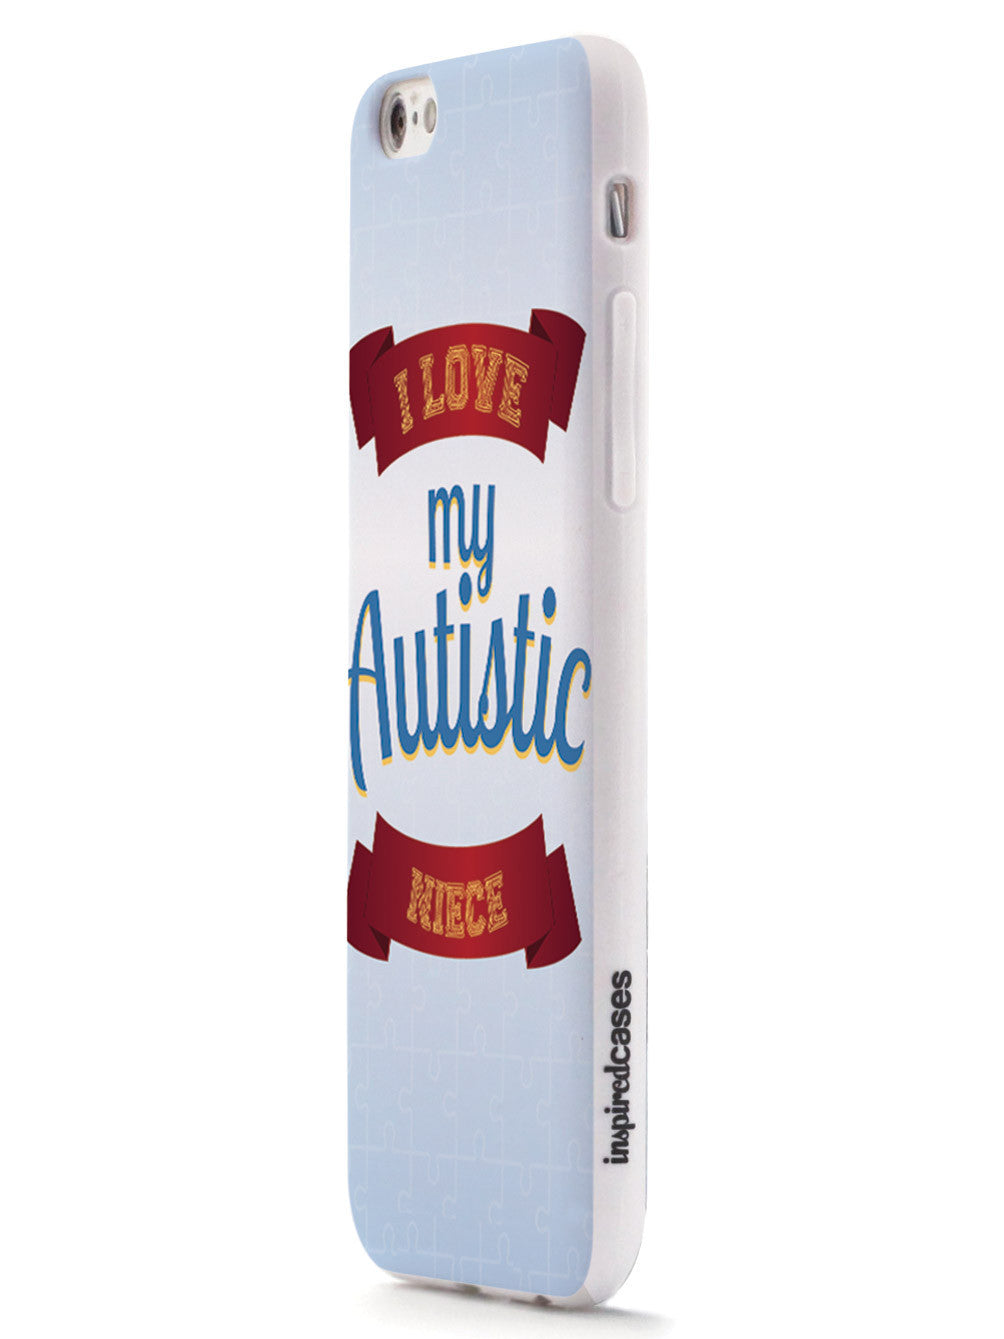 I Love my Autistic Niece - Autism Awareness Case